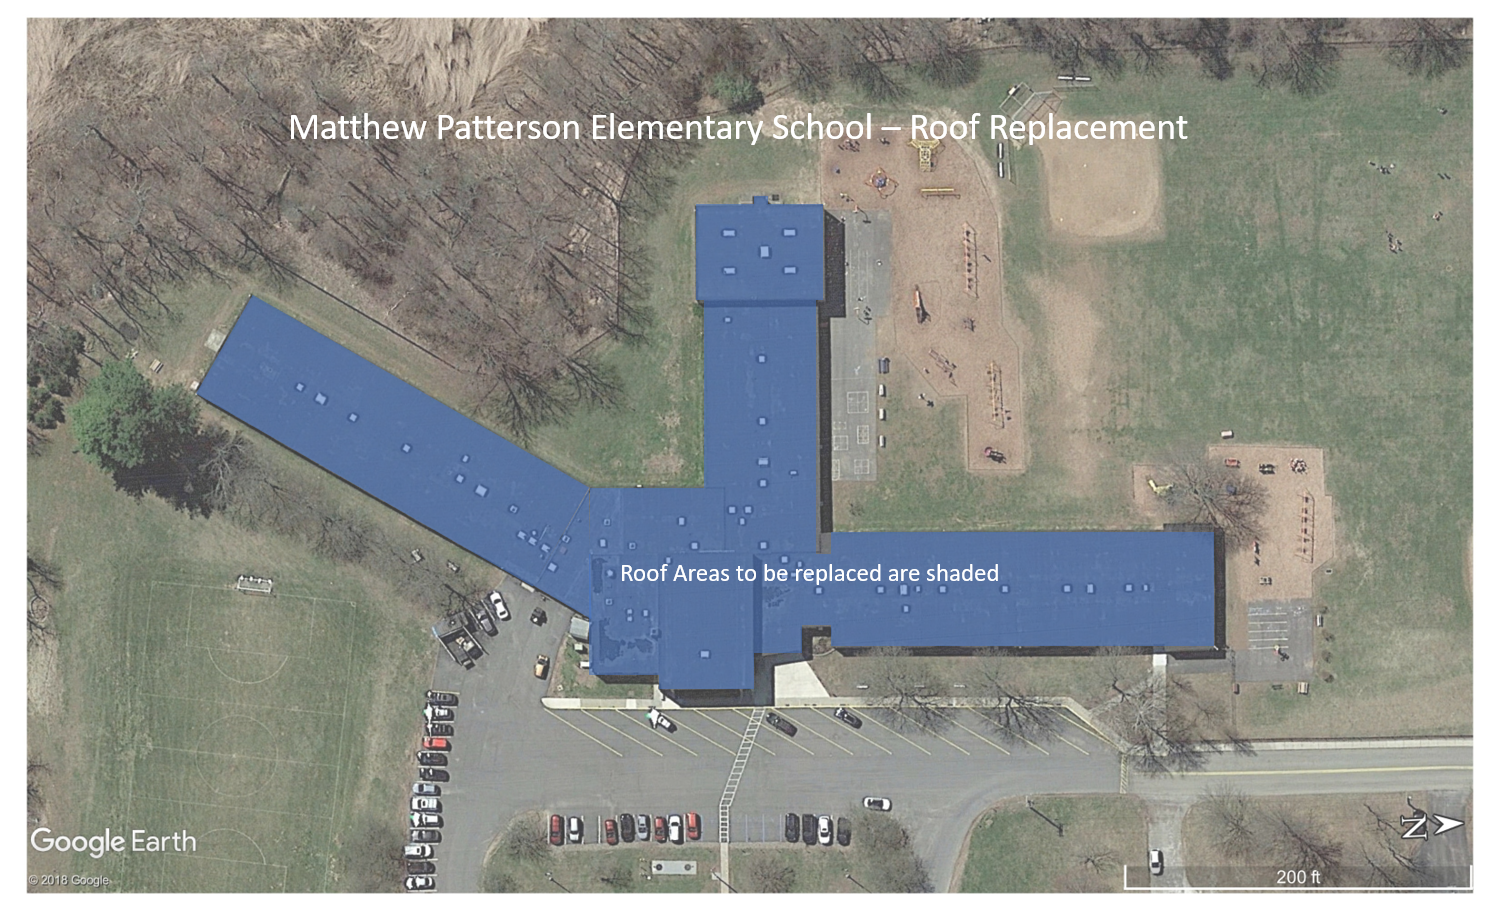 Matthew Paterson Elementary School (replacement sections are shown in blue)